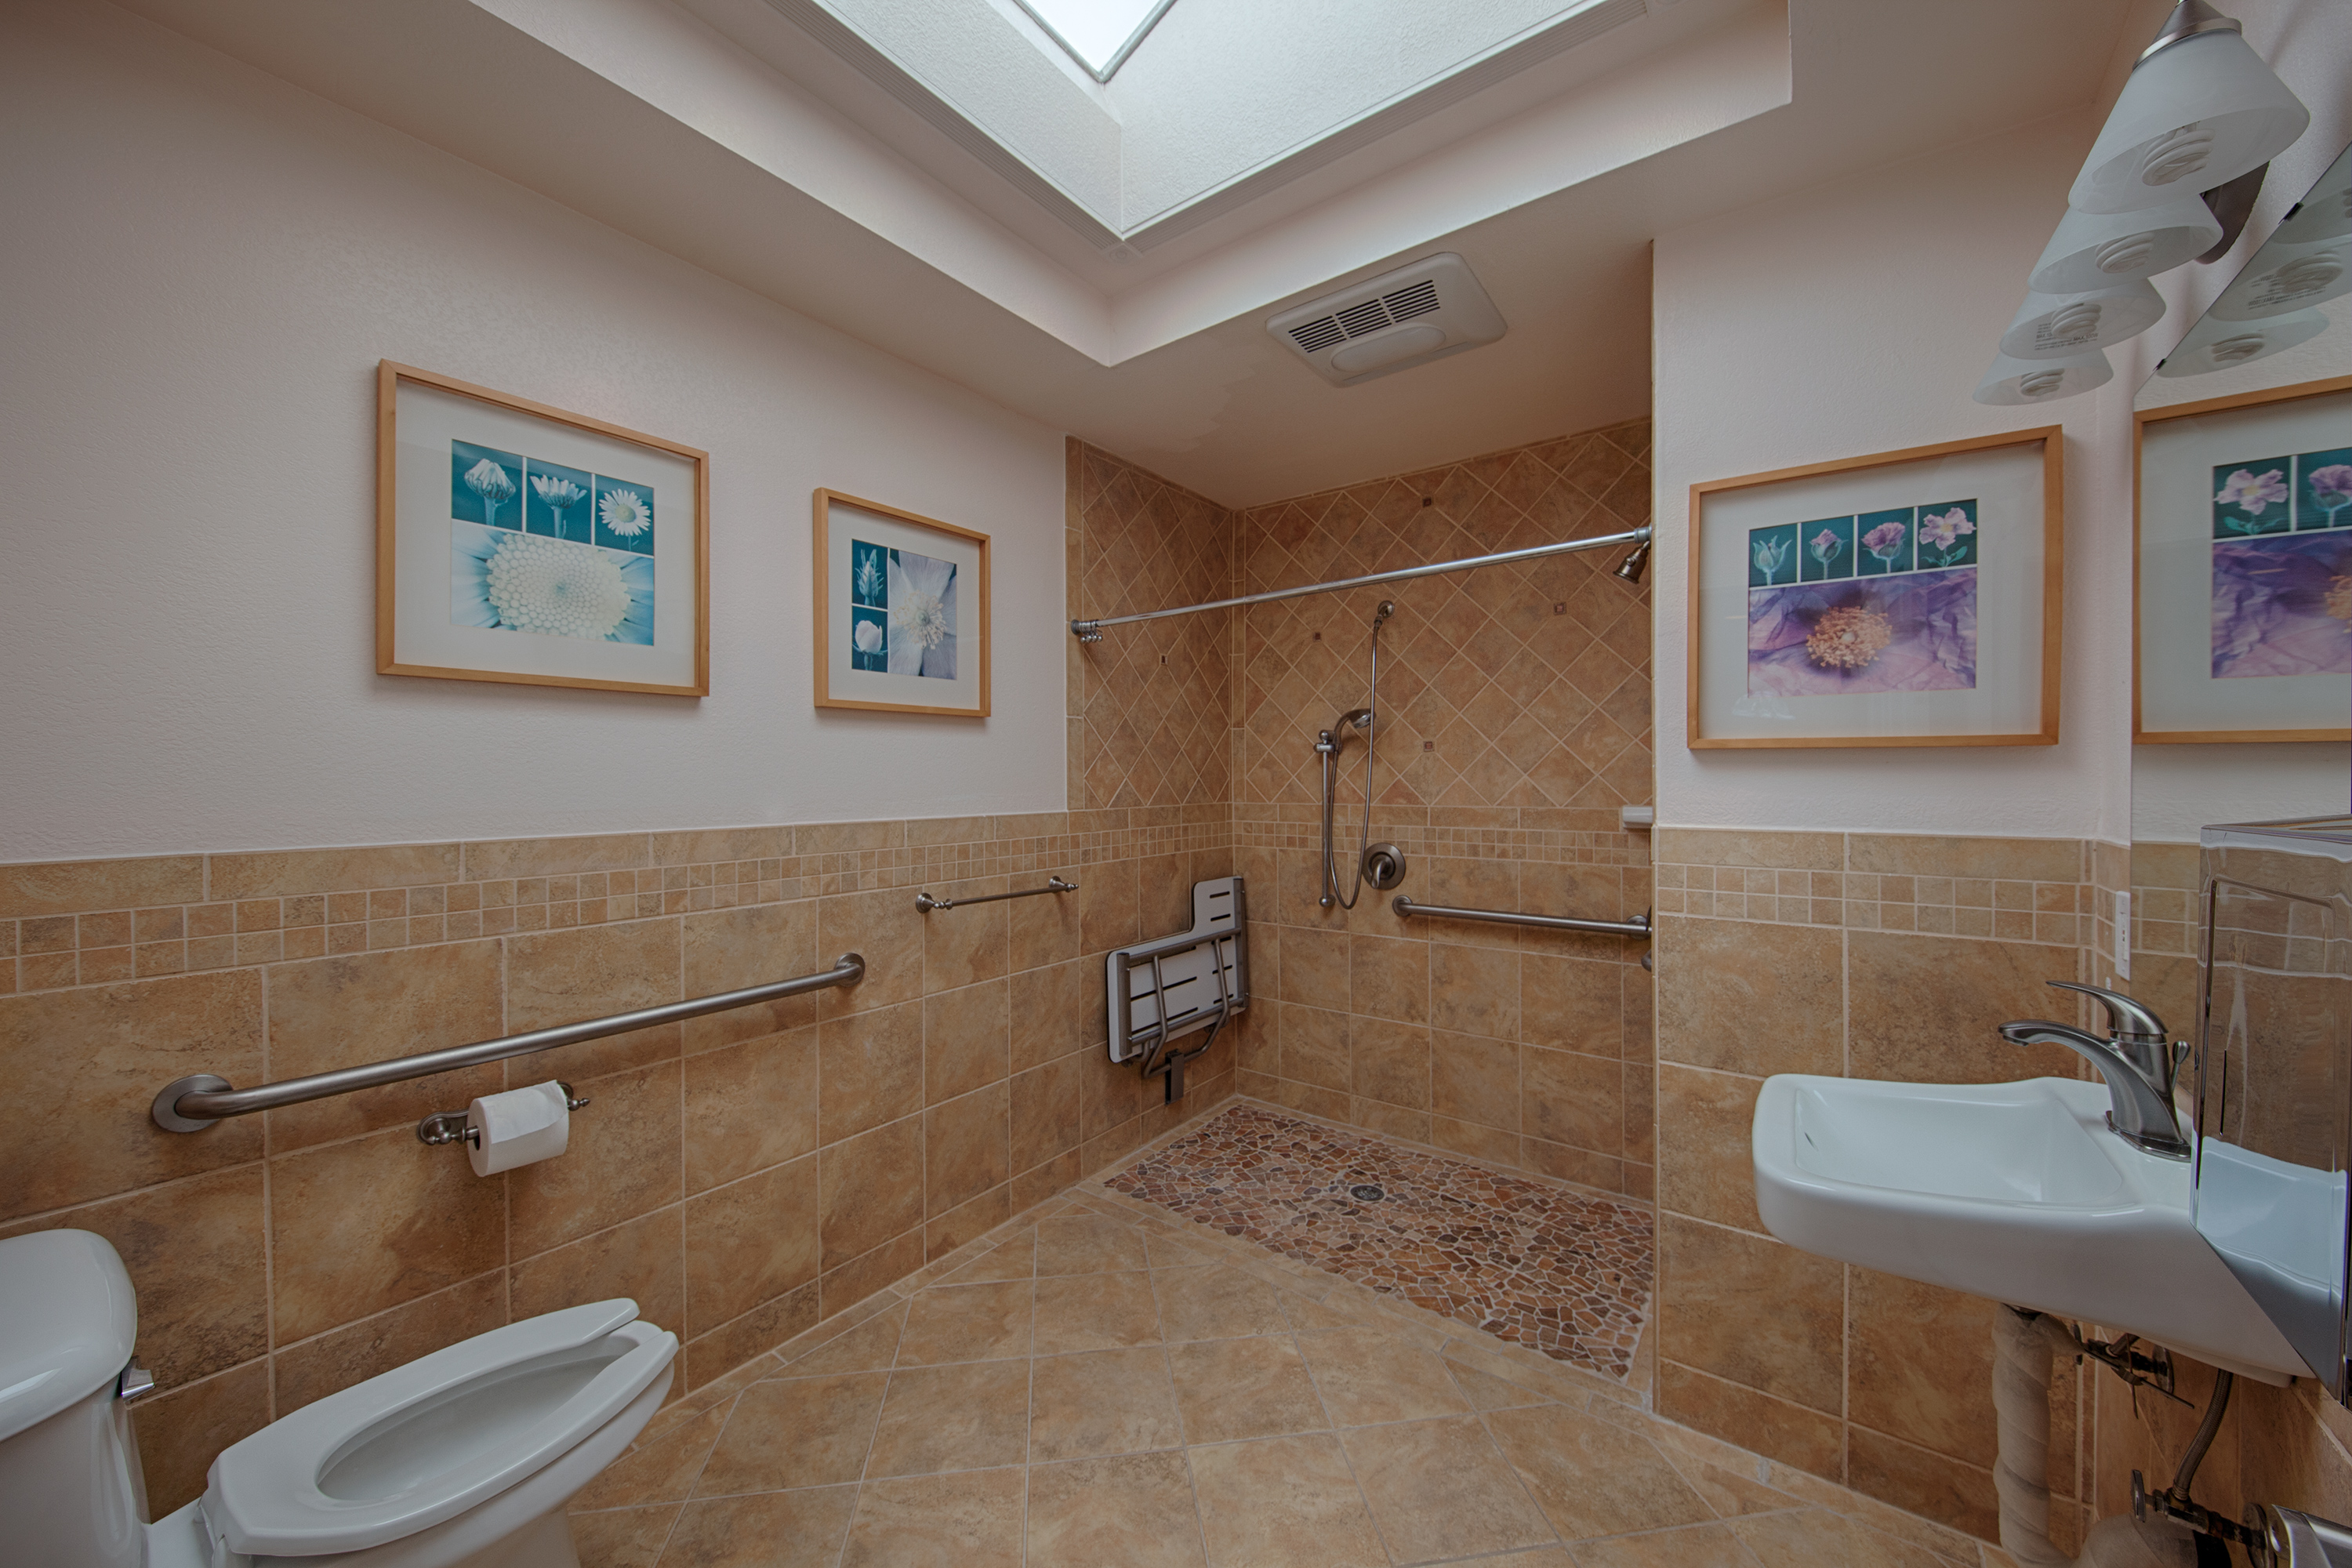 antonio local san jose plumbing in plumber bathroom remodels additions renovation new tx construction remodeling and